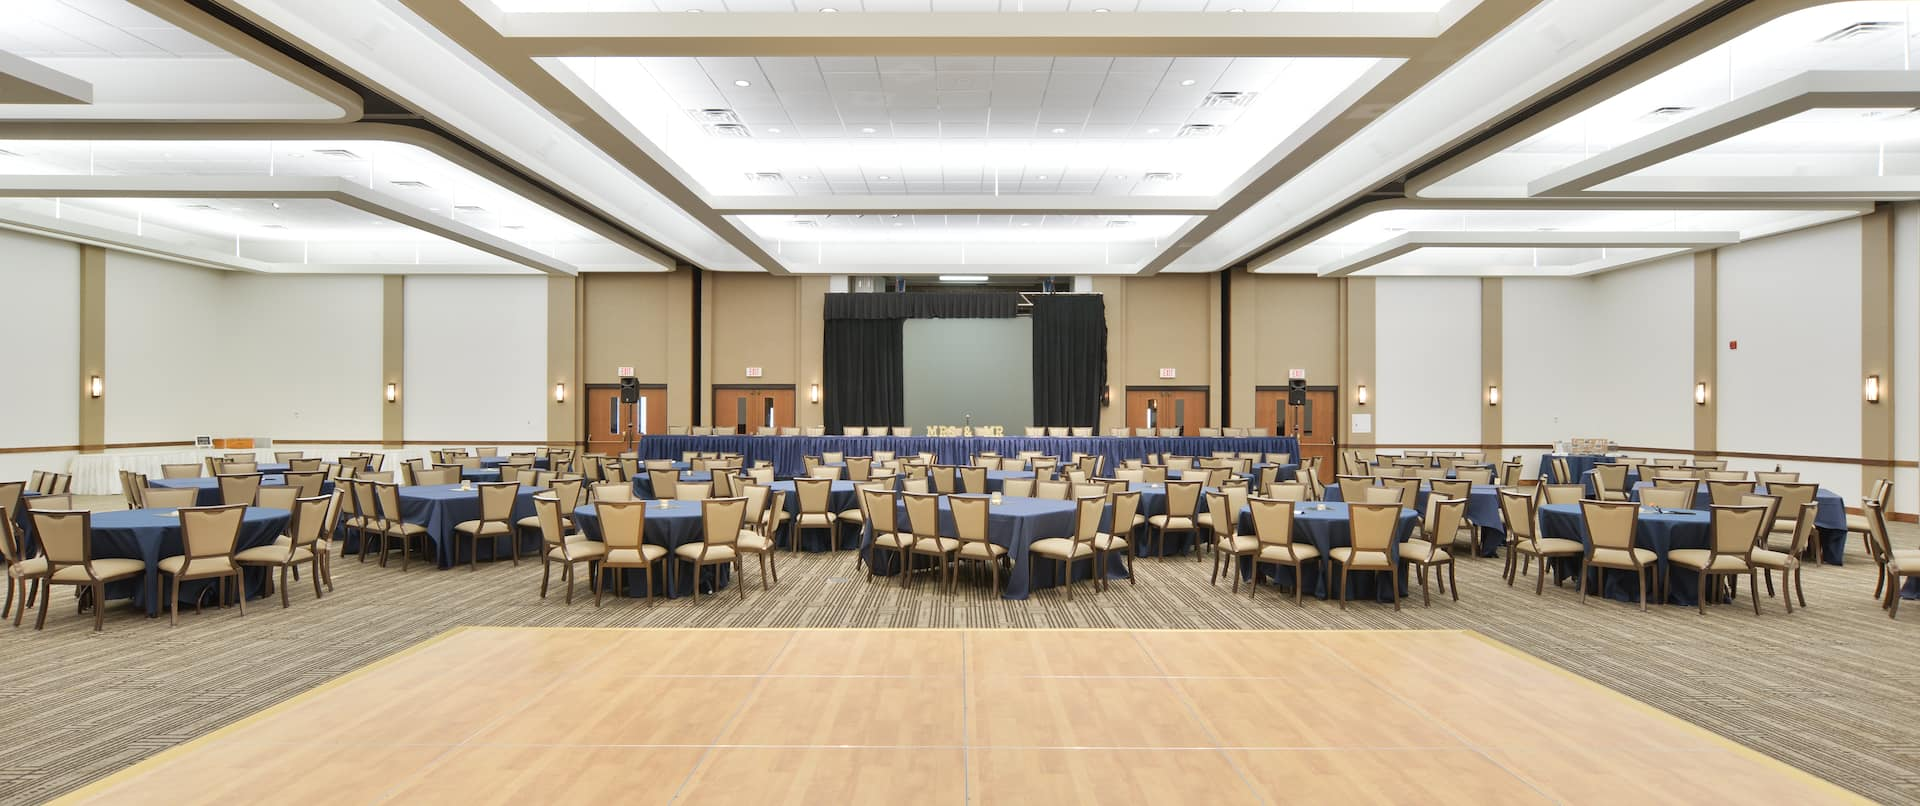 Dance Floor, Mixed Tables With Blue Linens, Tan Chairs, and Head Table In Front of Large Presentation Screen With Black Drapes Set Up in Large Banquet Space